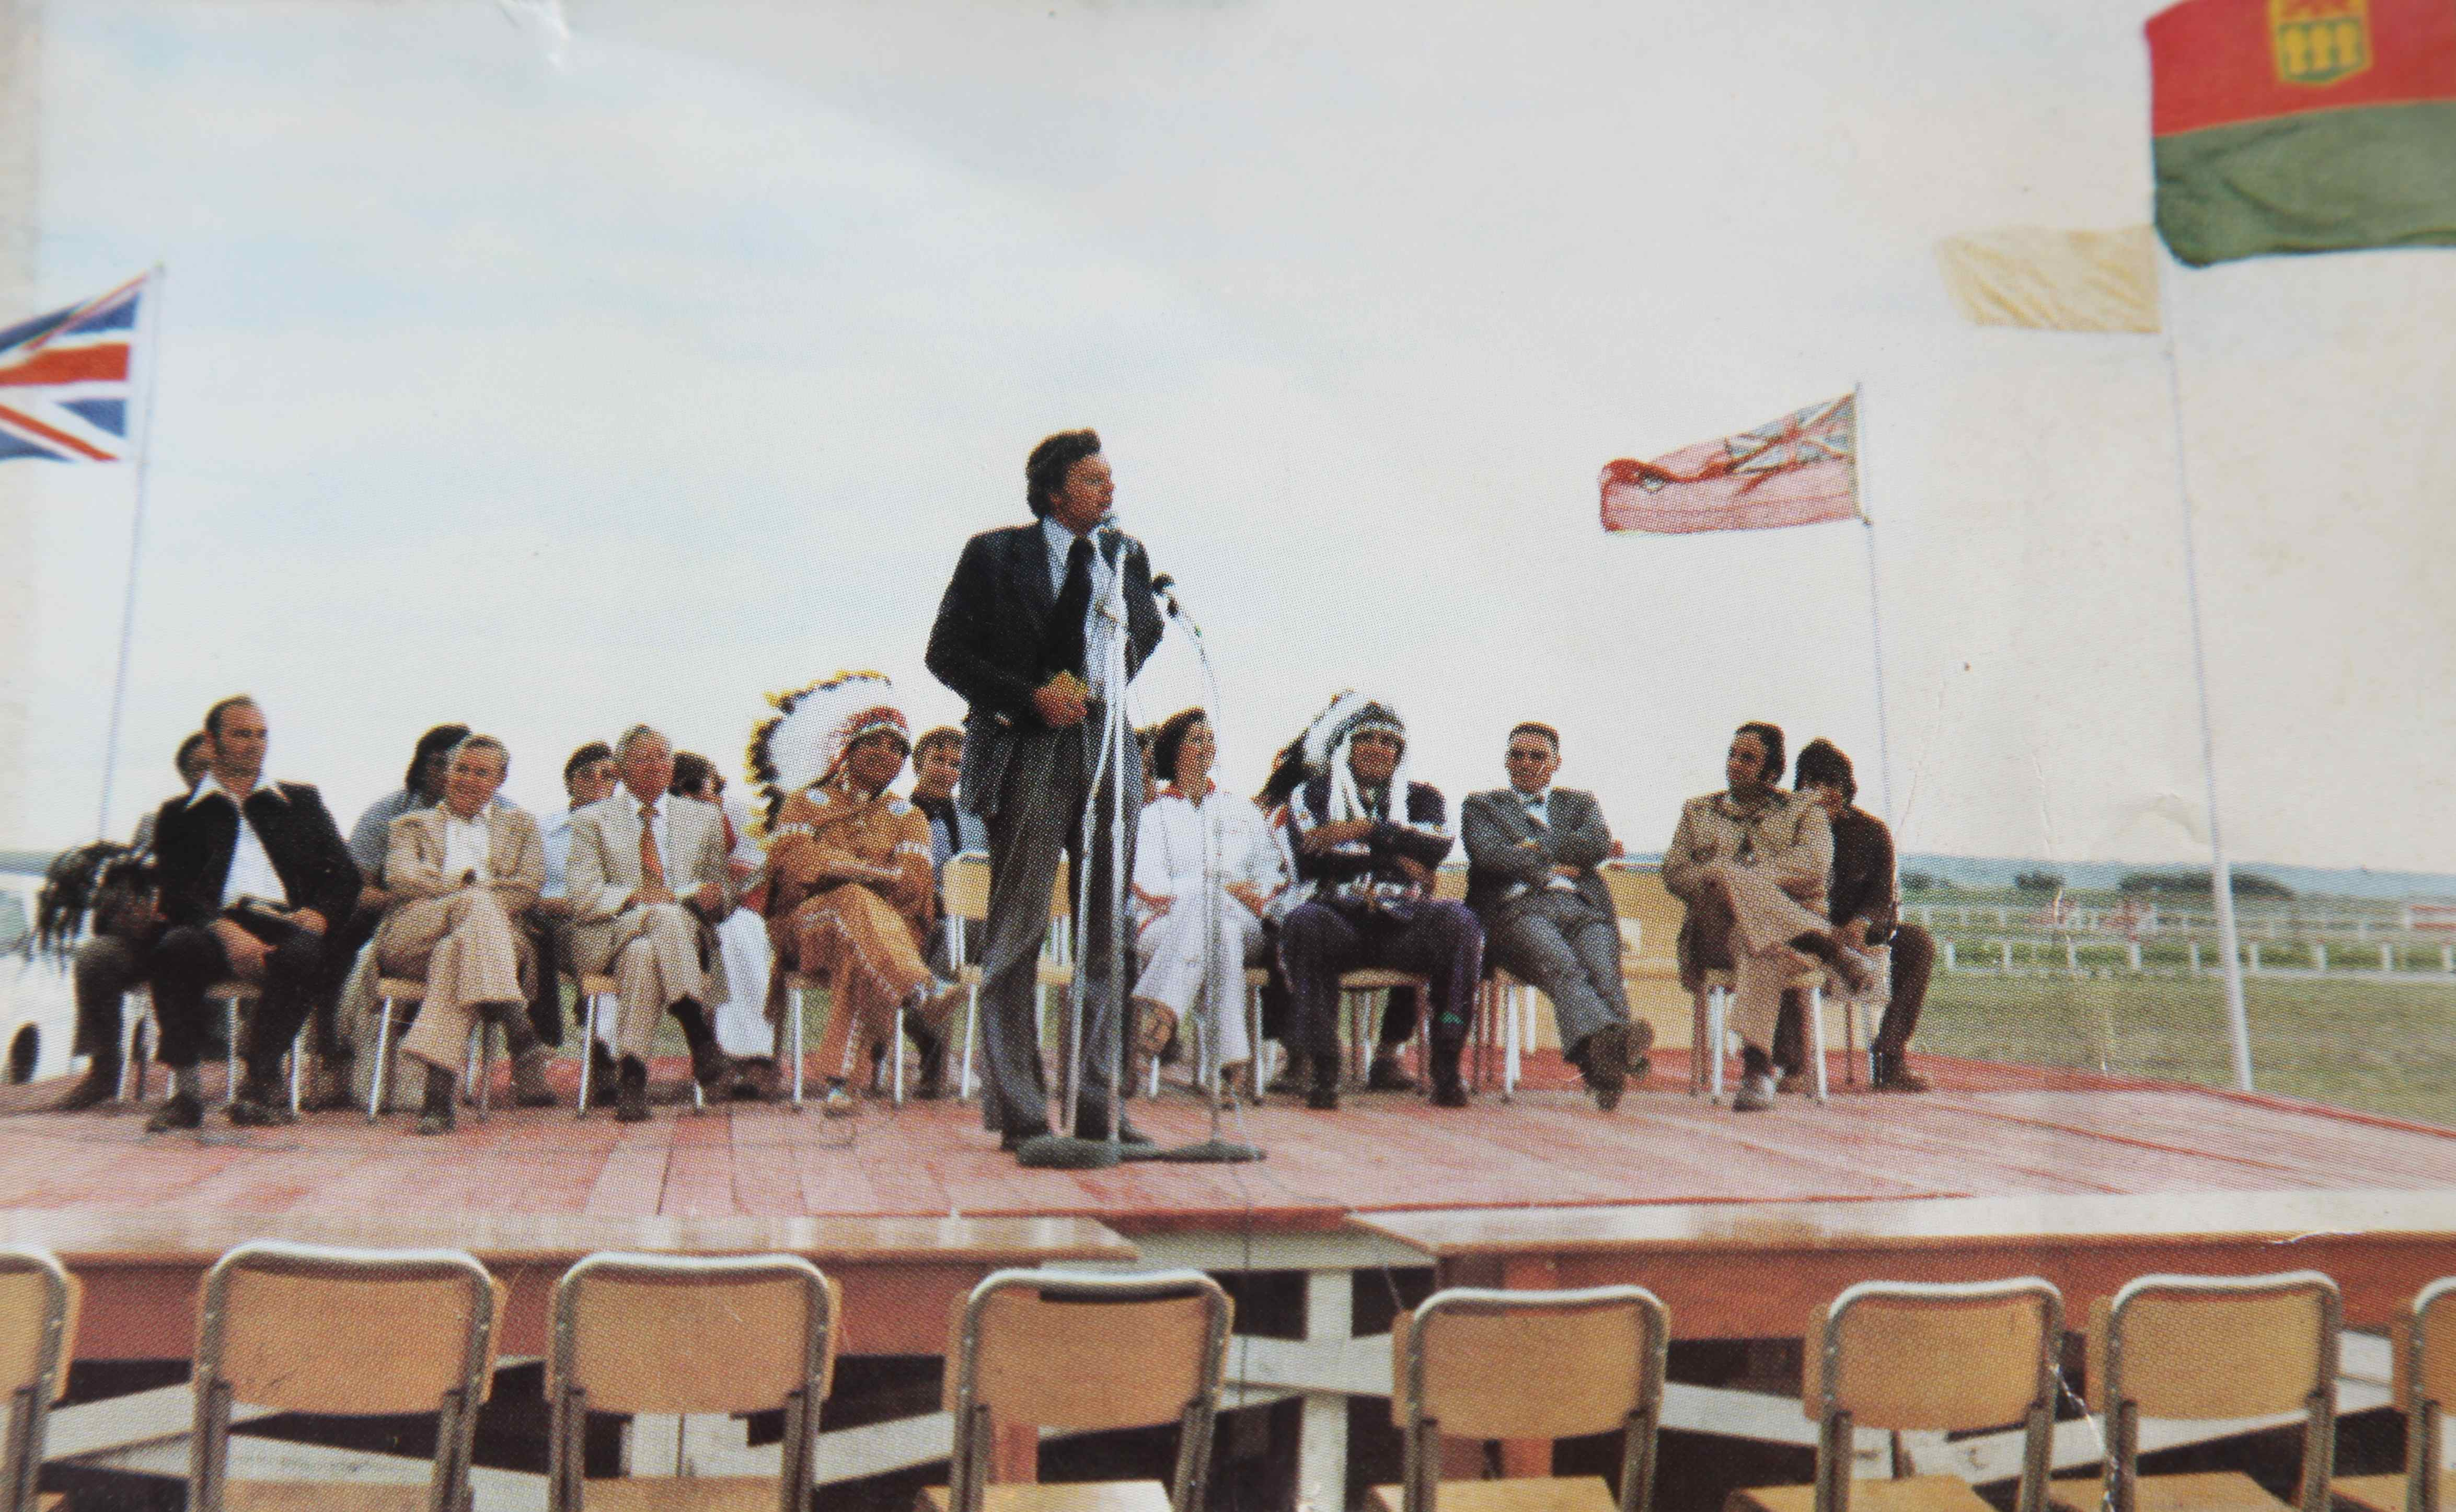 M.P. Lorne Nystrom, Yorkton-Melville Constituency, addresses crowd at the Saskatchewan Indian Summer Games, Cote Reserve, 1977